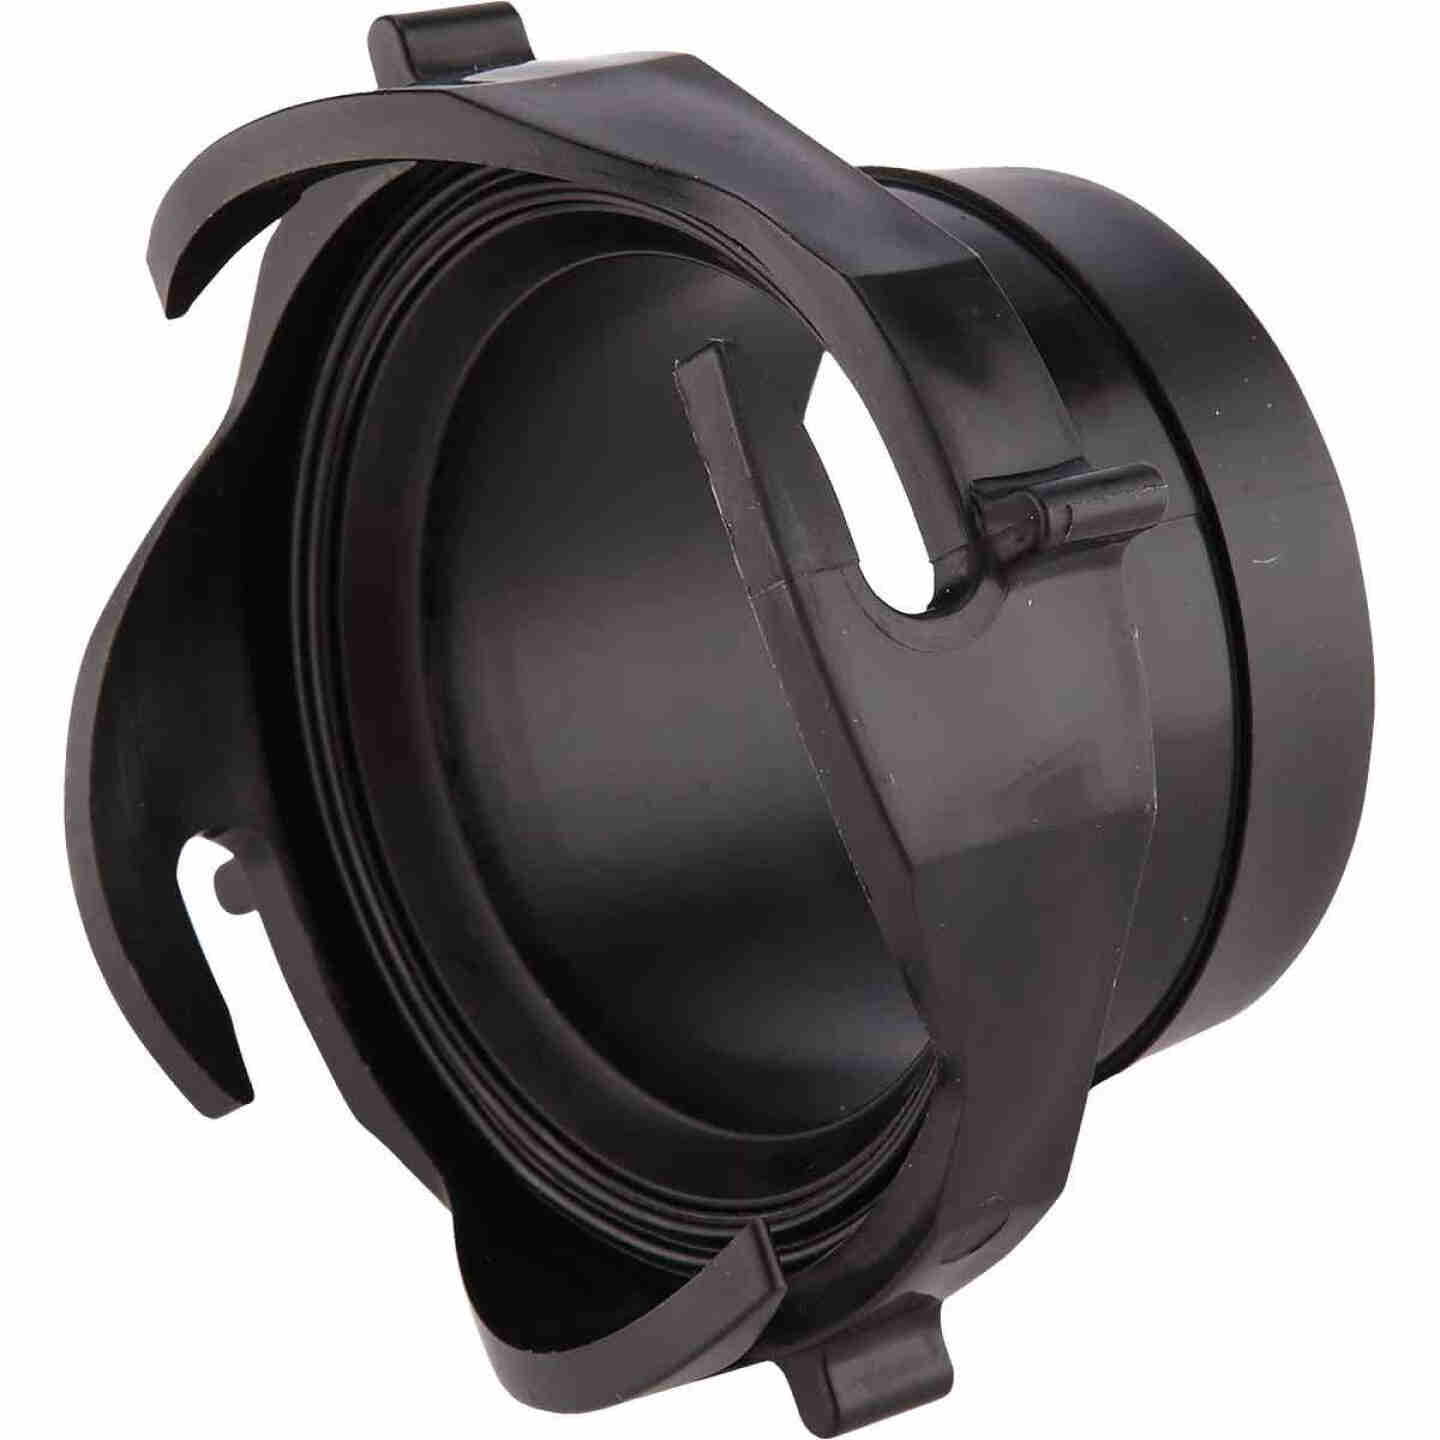 Camco Straight RV Sewer Hose Adapter Image 3